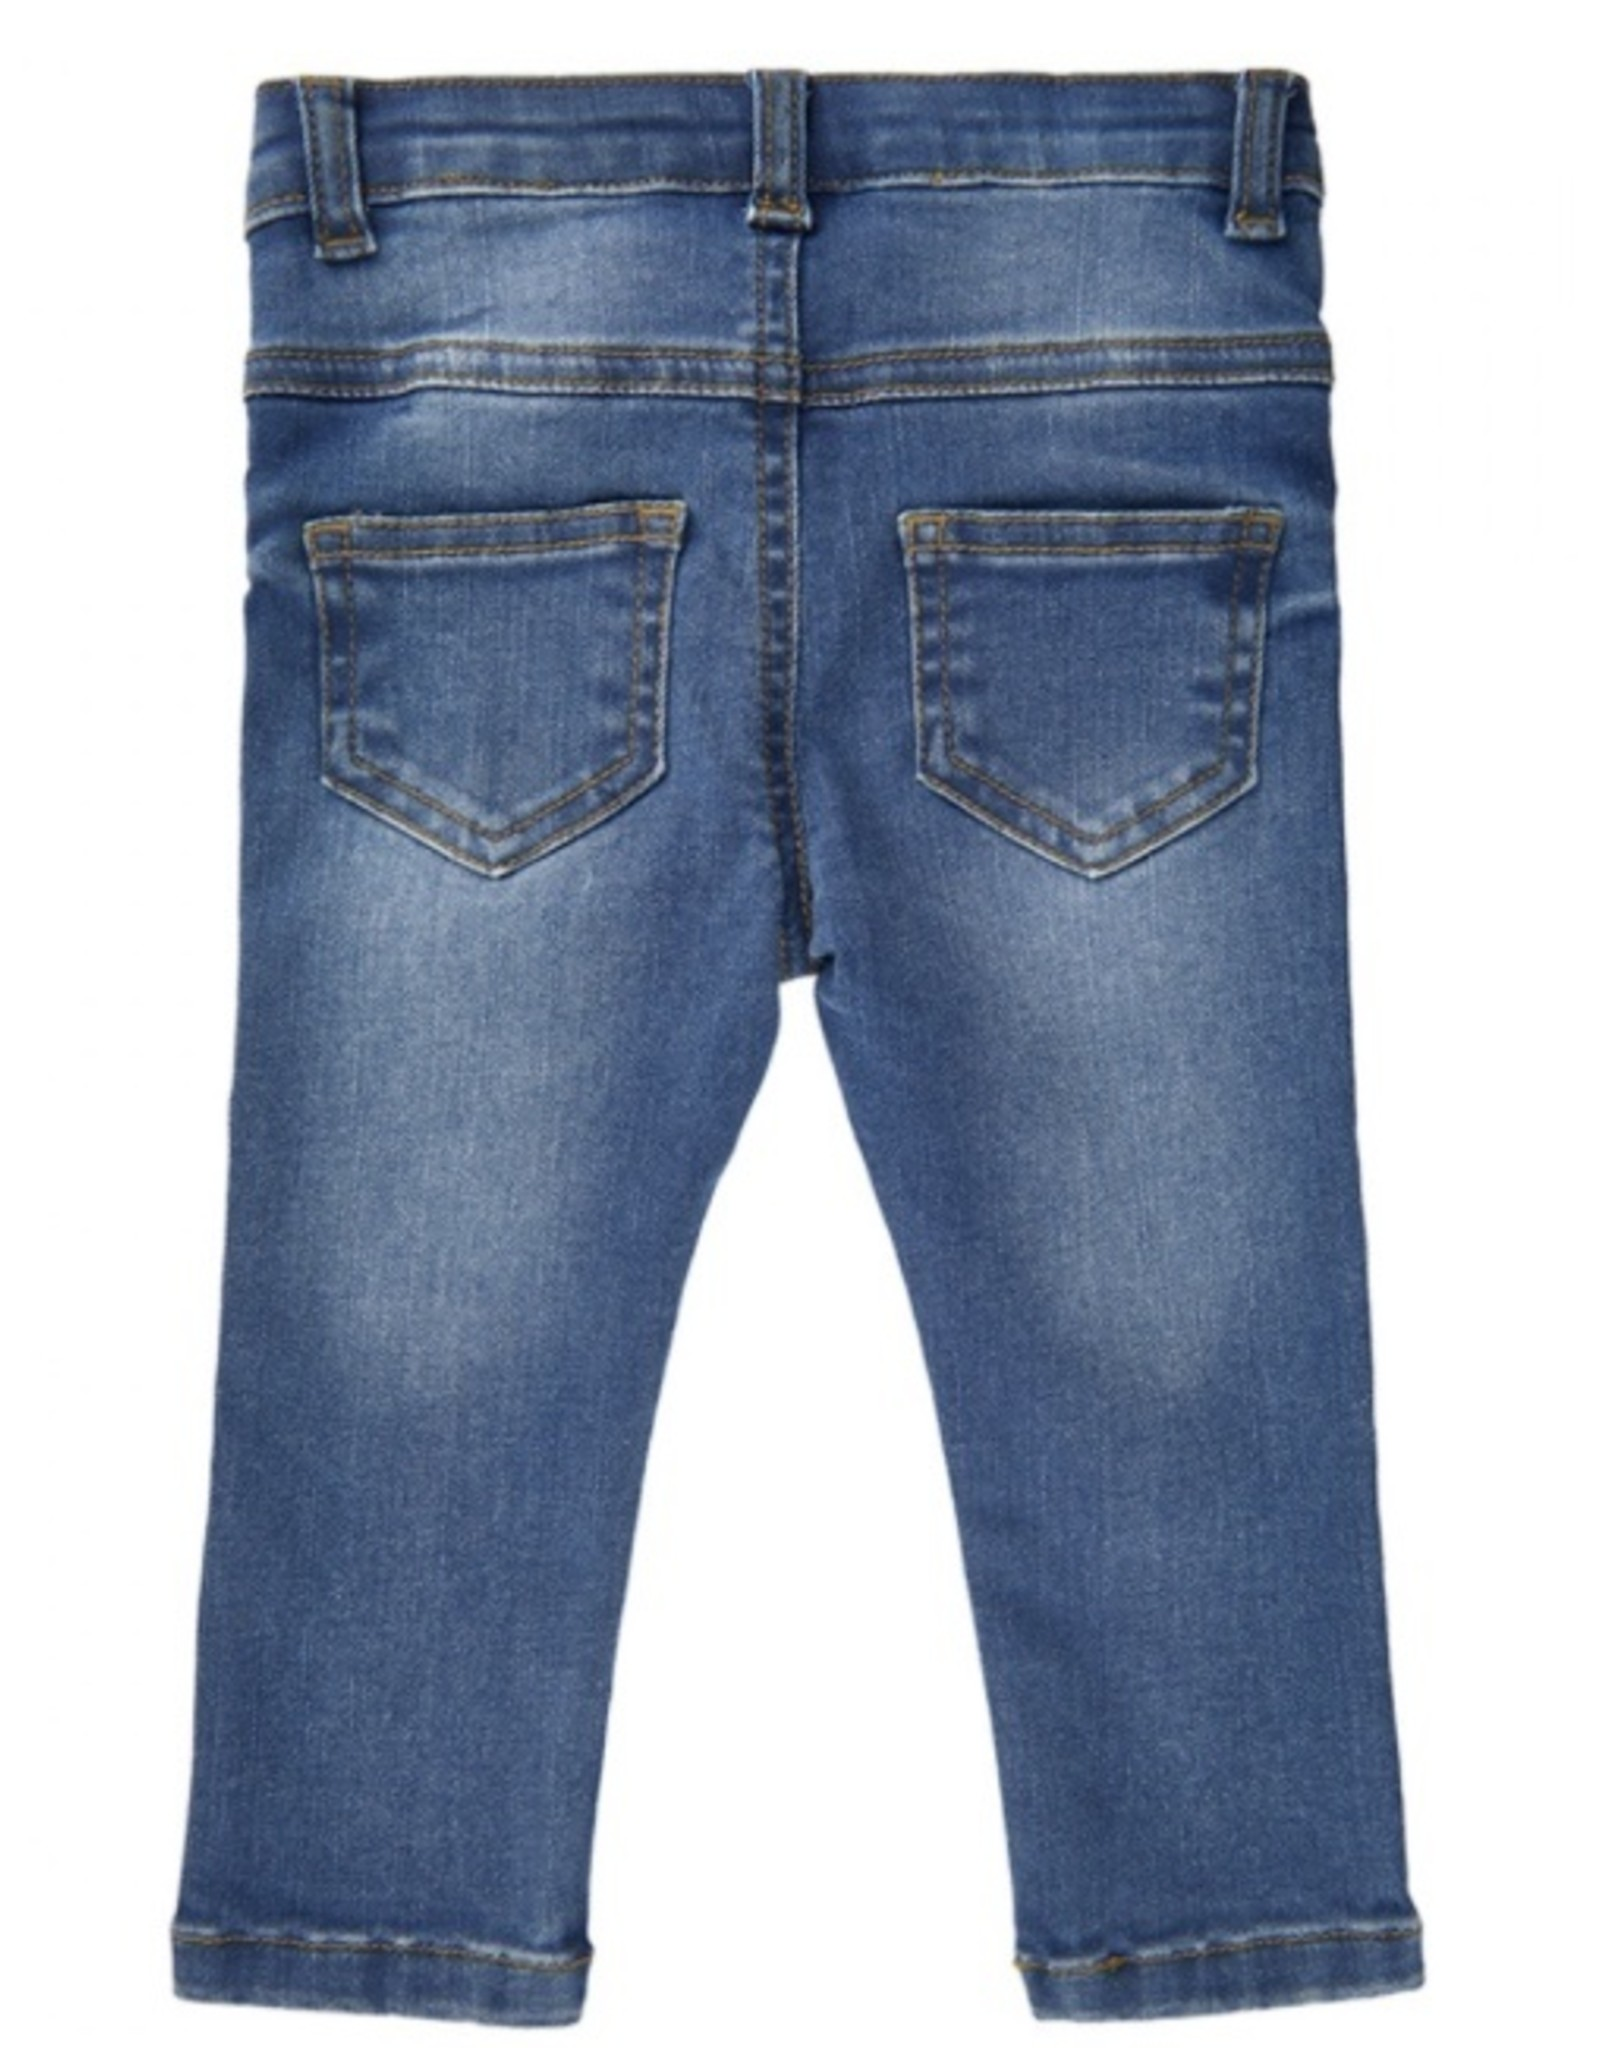 The New Alfredo Jeans